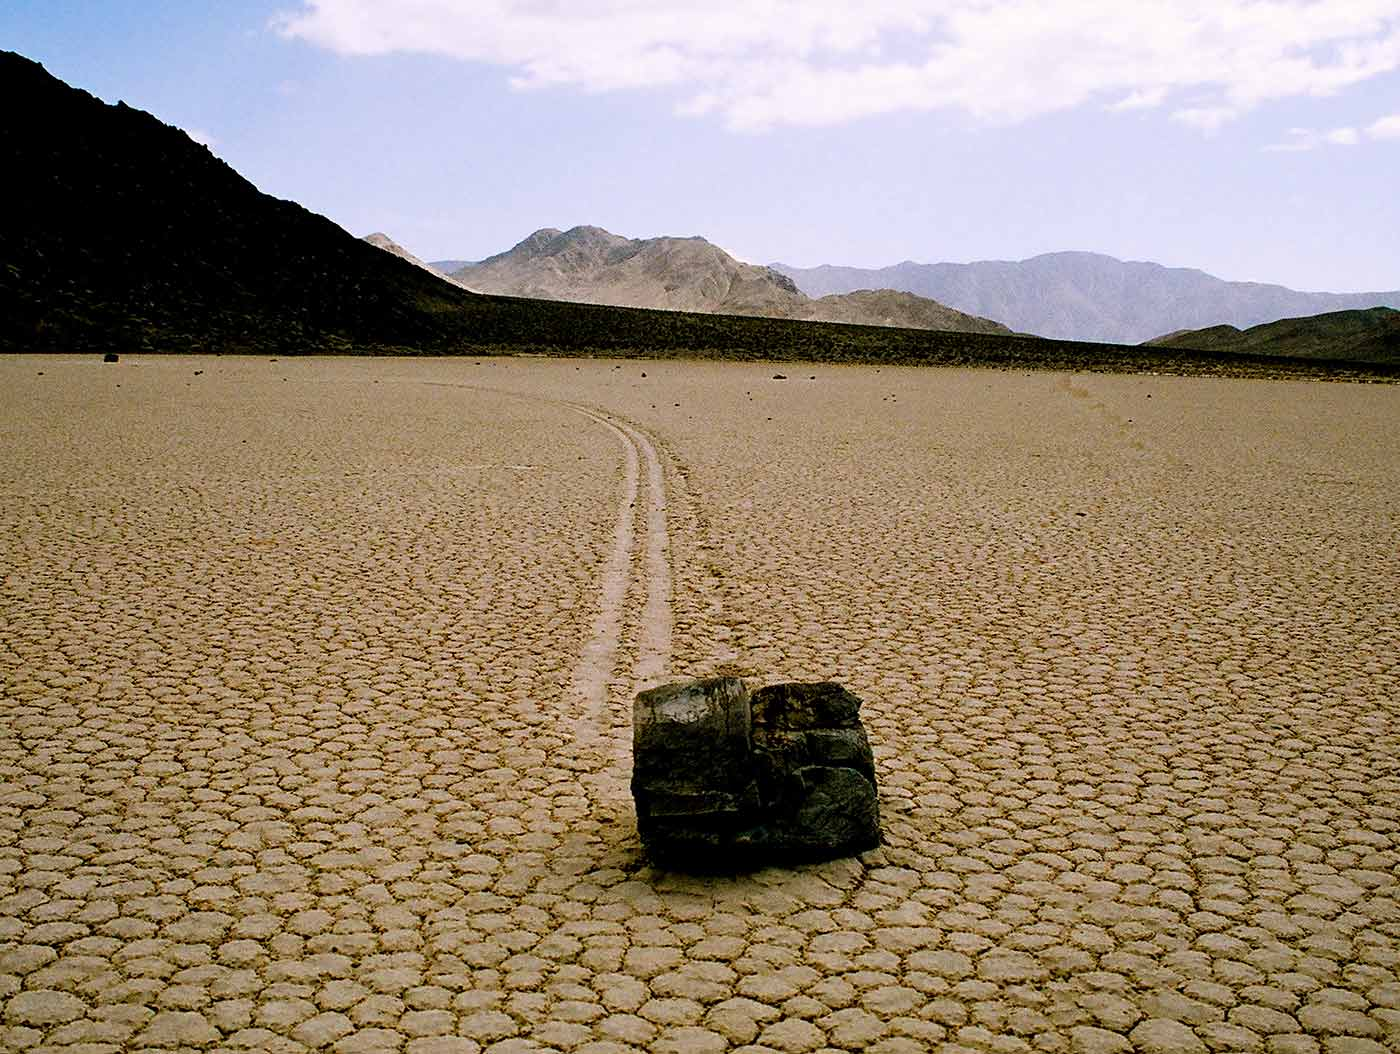 Sailing stone at The Racetrack in Death Valley.